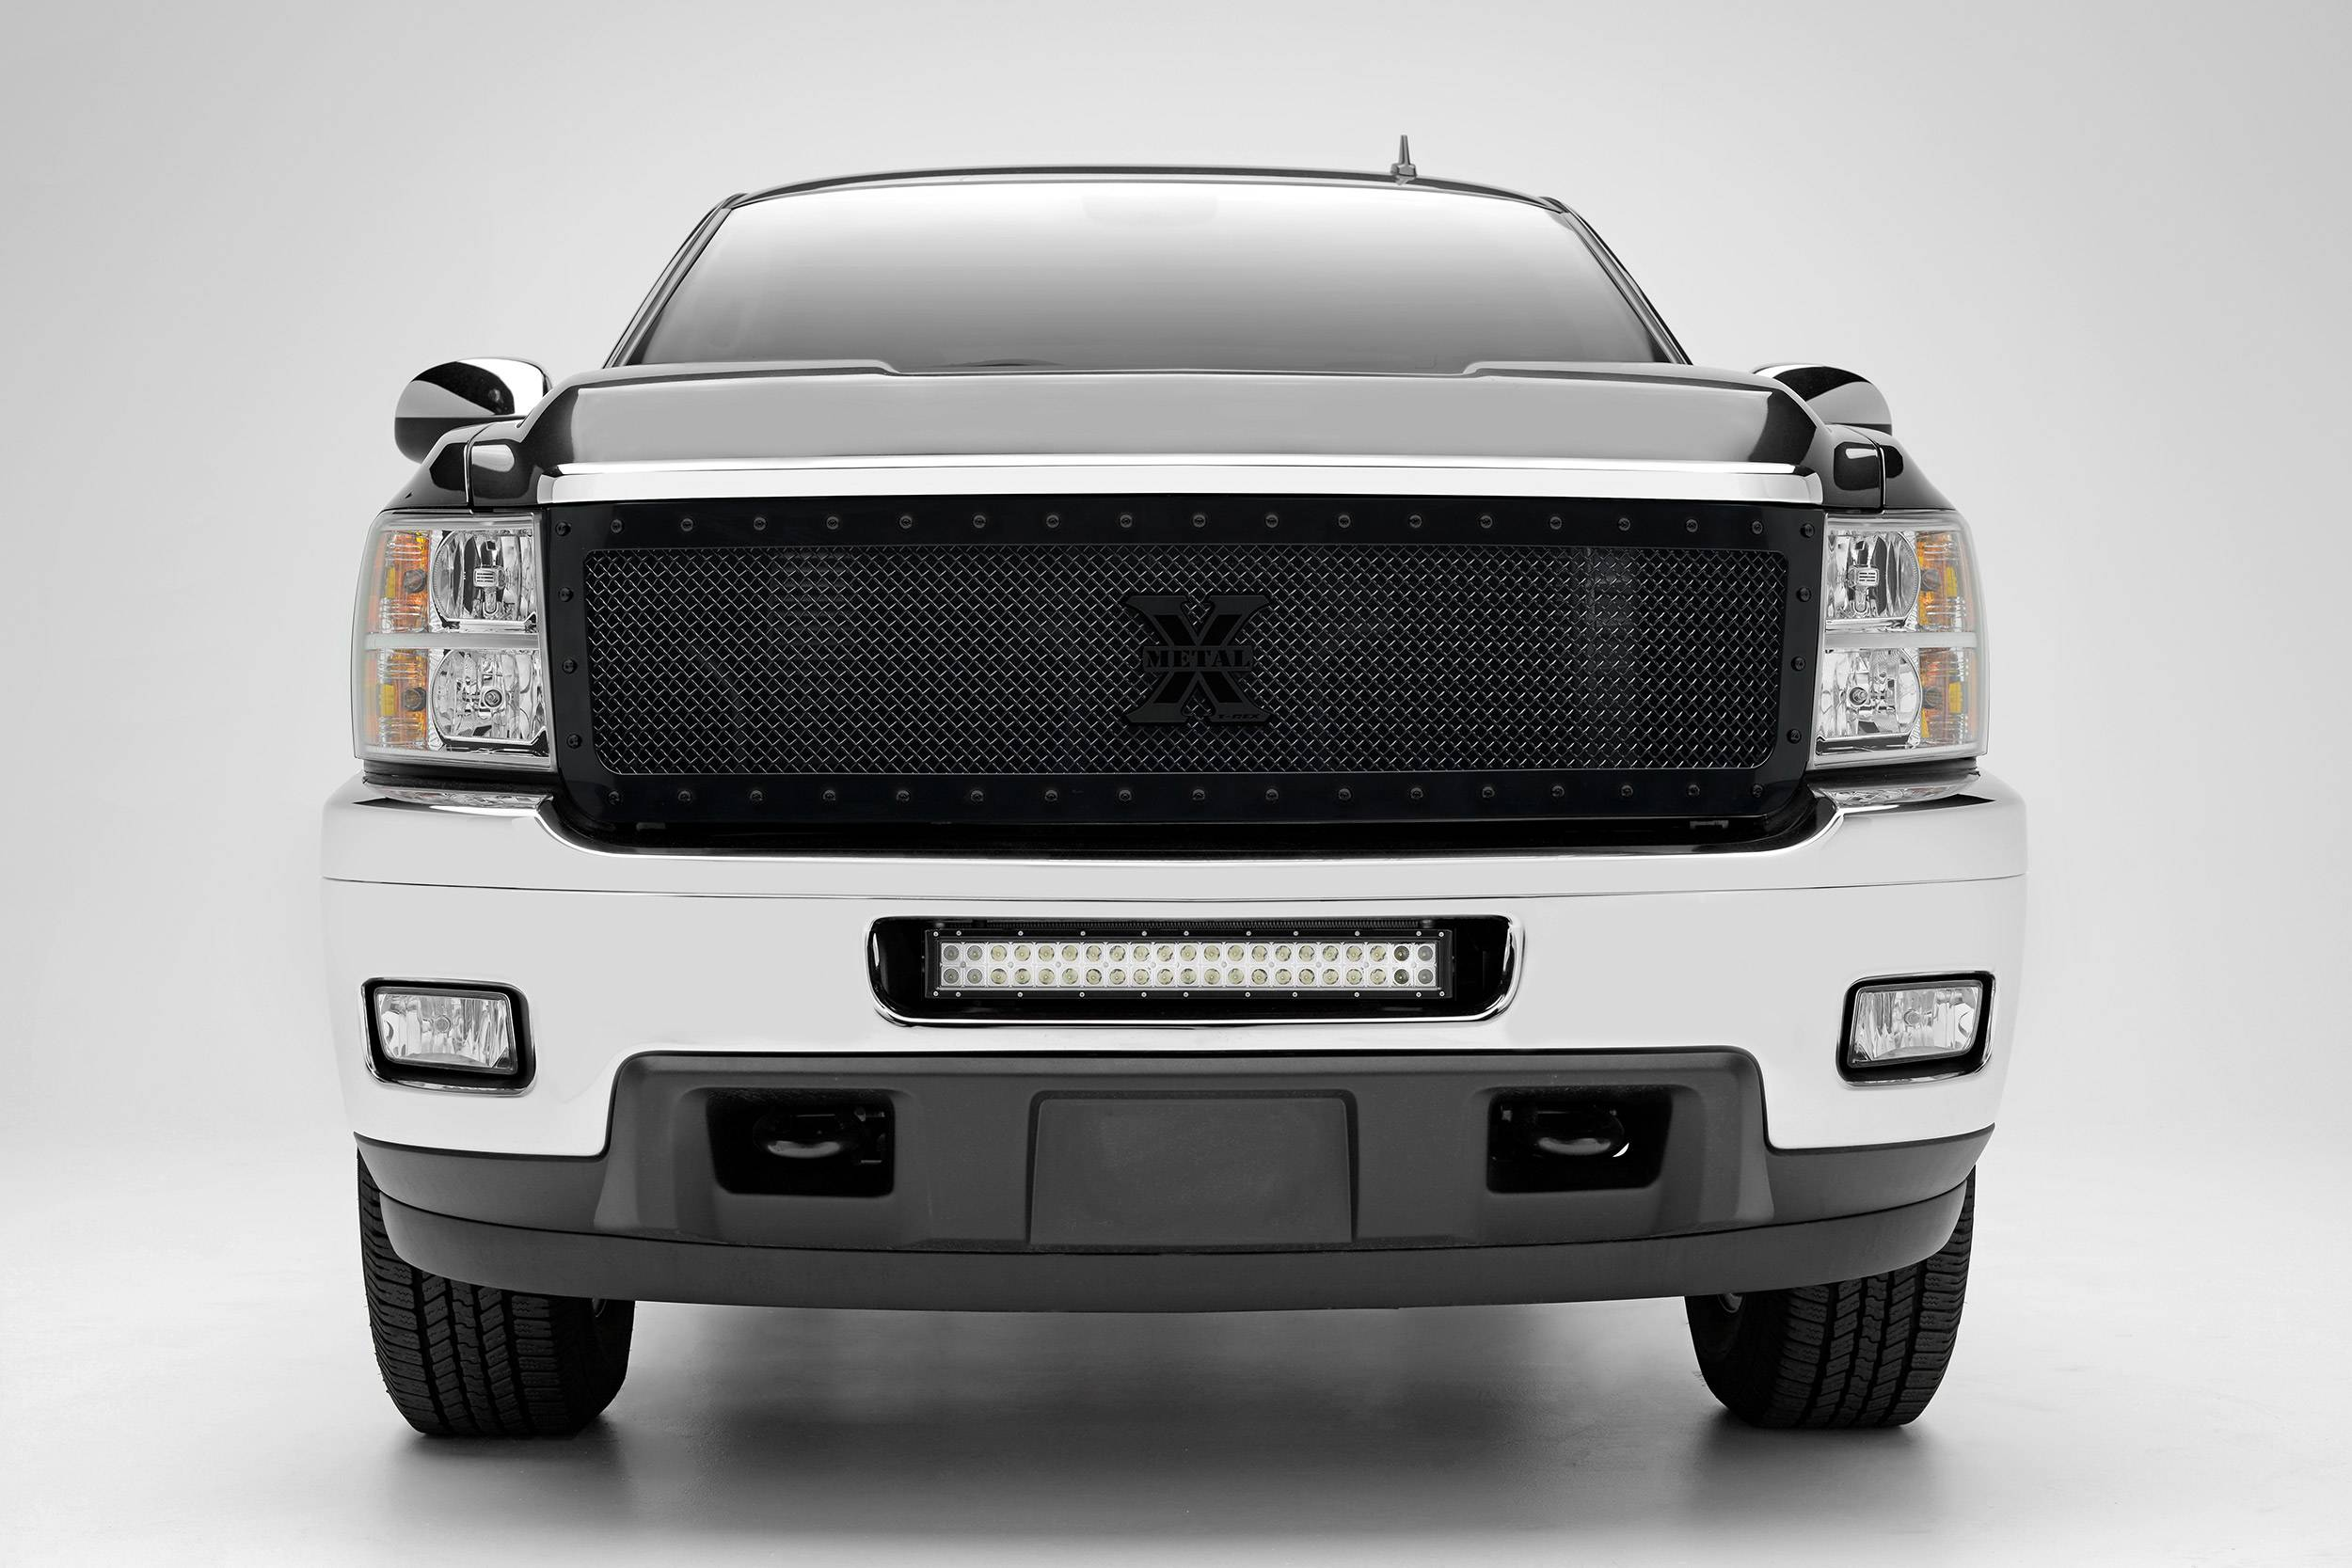 2011-2013 Chevrolet Silverado 2500, 3500 Front Bumper Center LED Kit, Incl. (1) 20 Inch LED Straight Double Row Light Bar - PN #Z321151-KIT